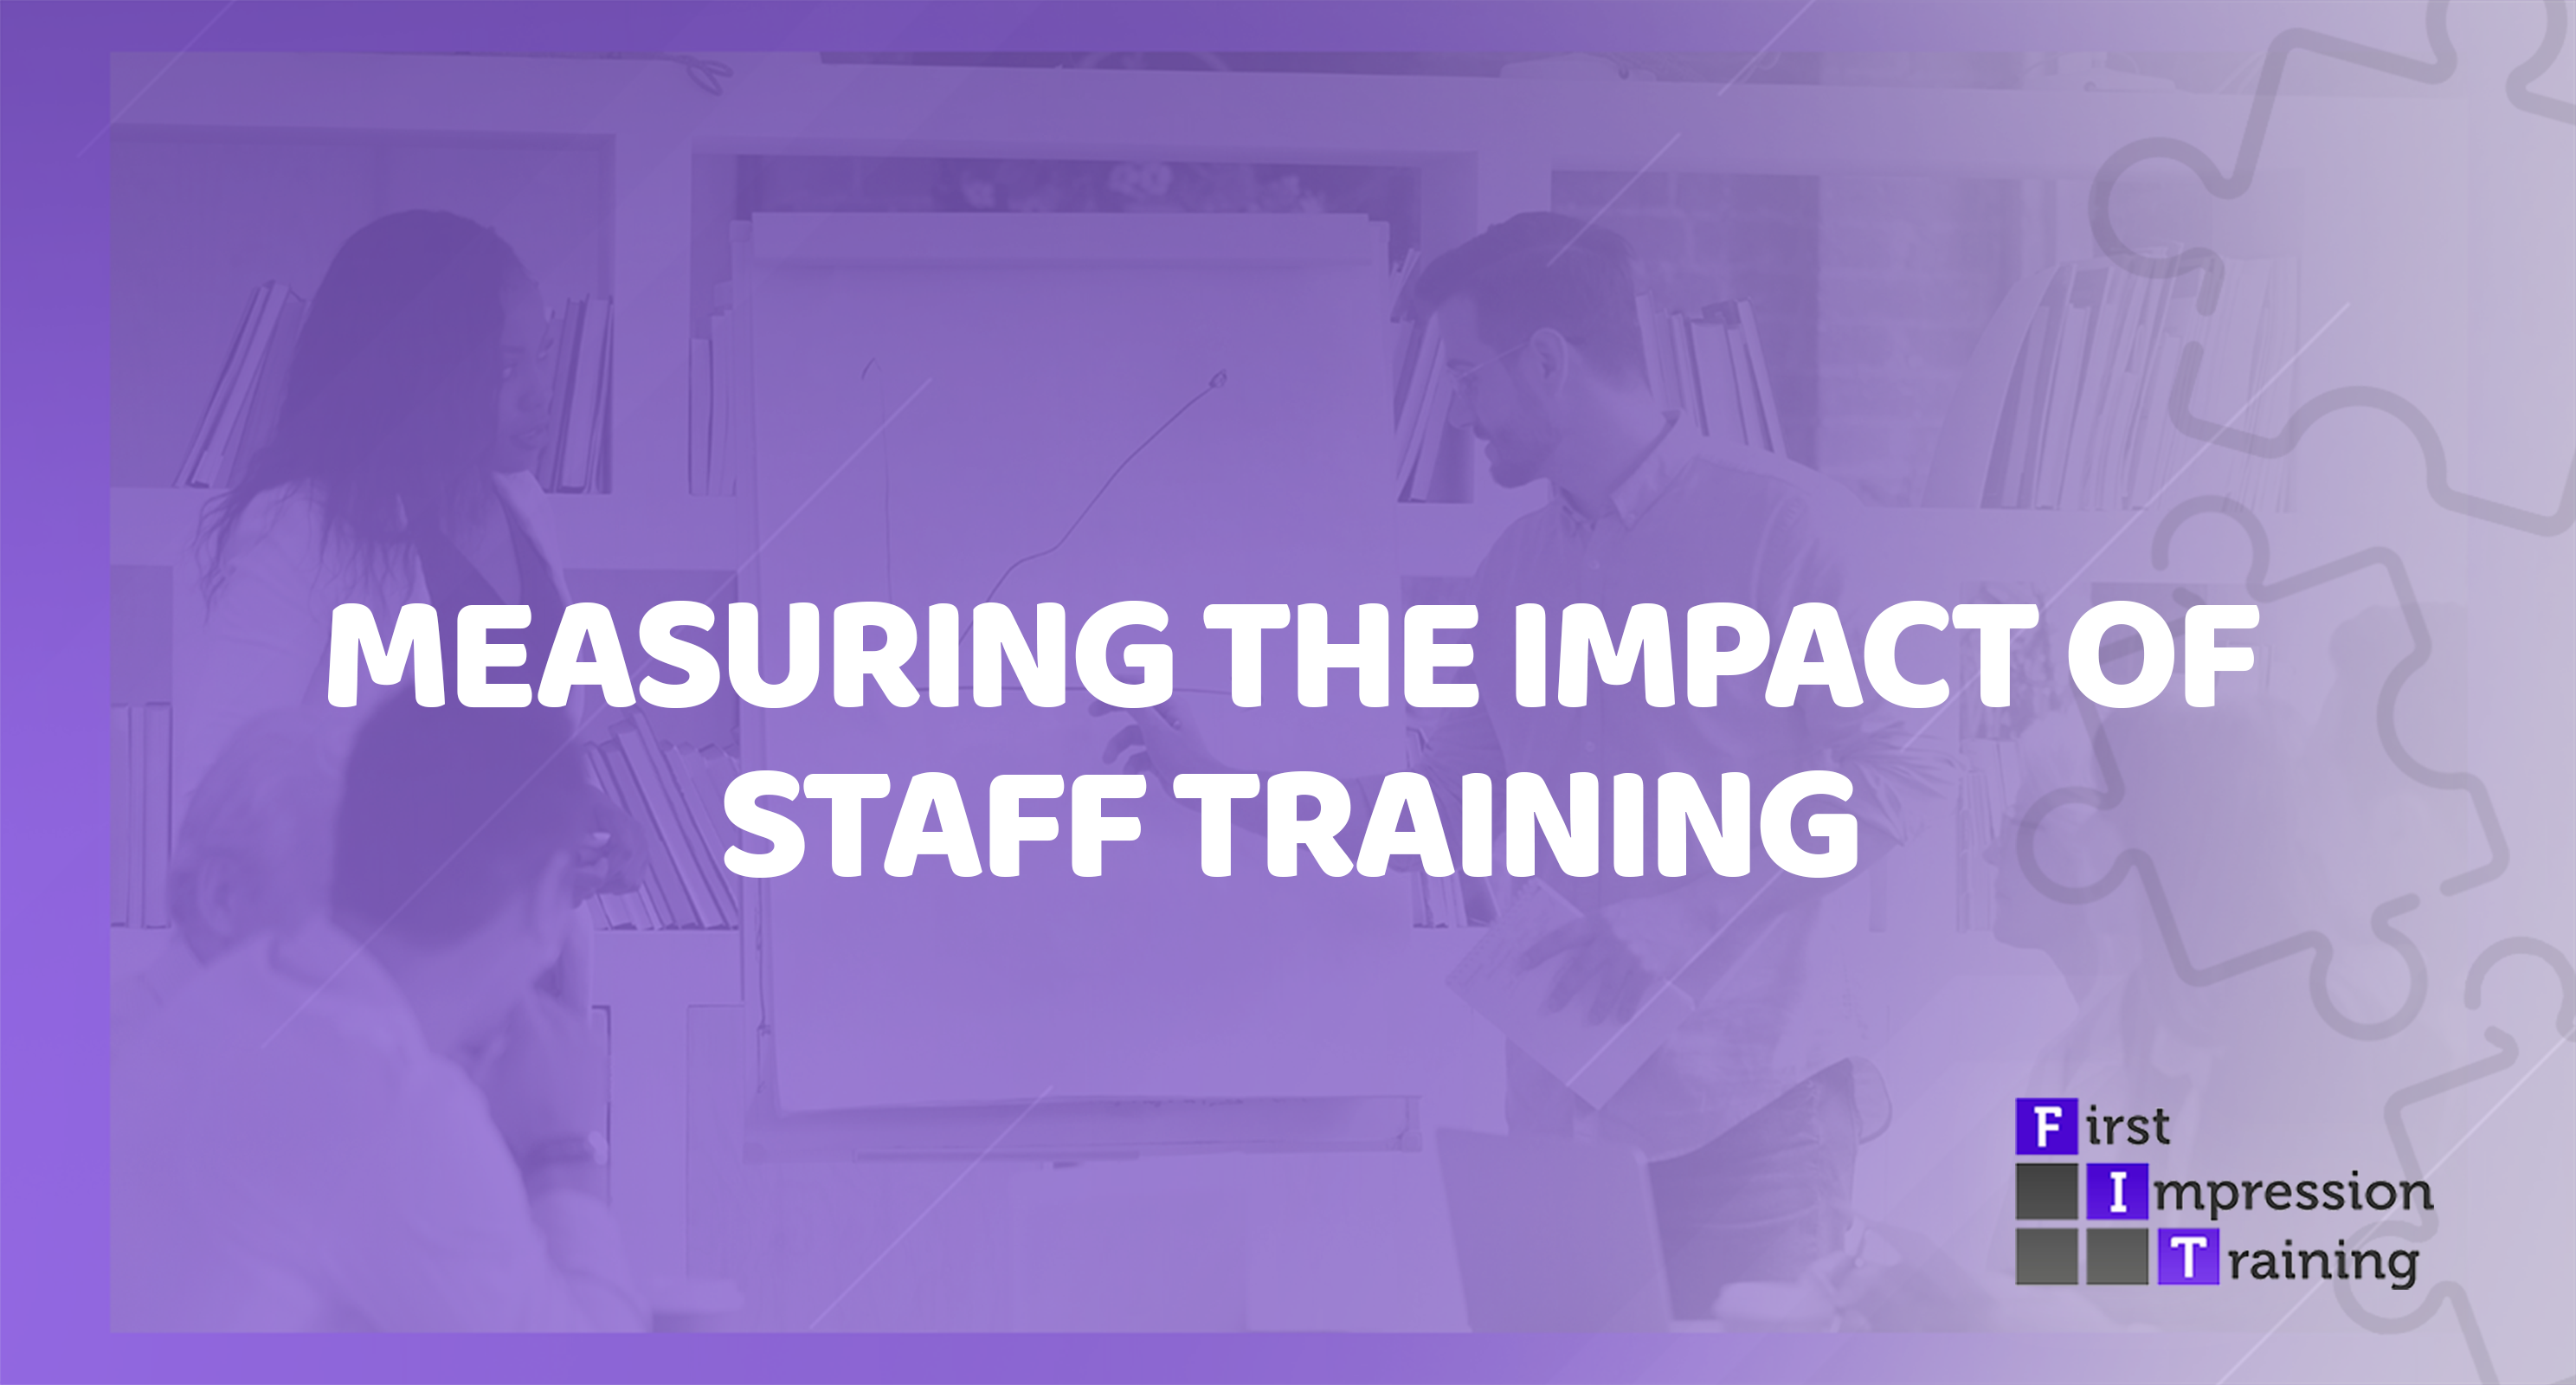 How can you measure the impact & benefits of staff training?